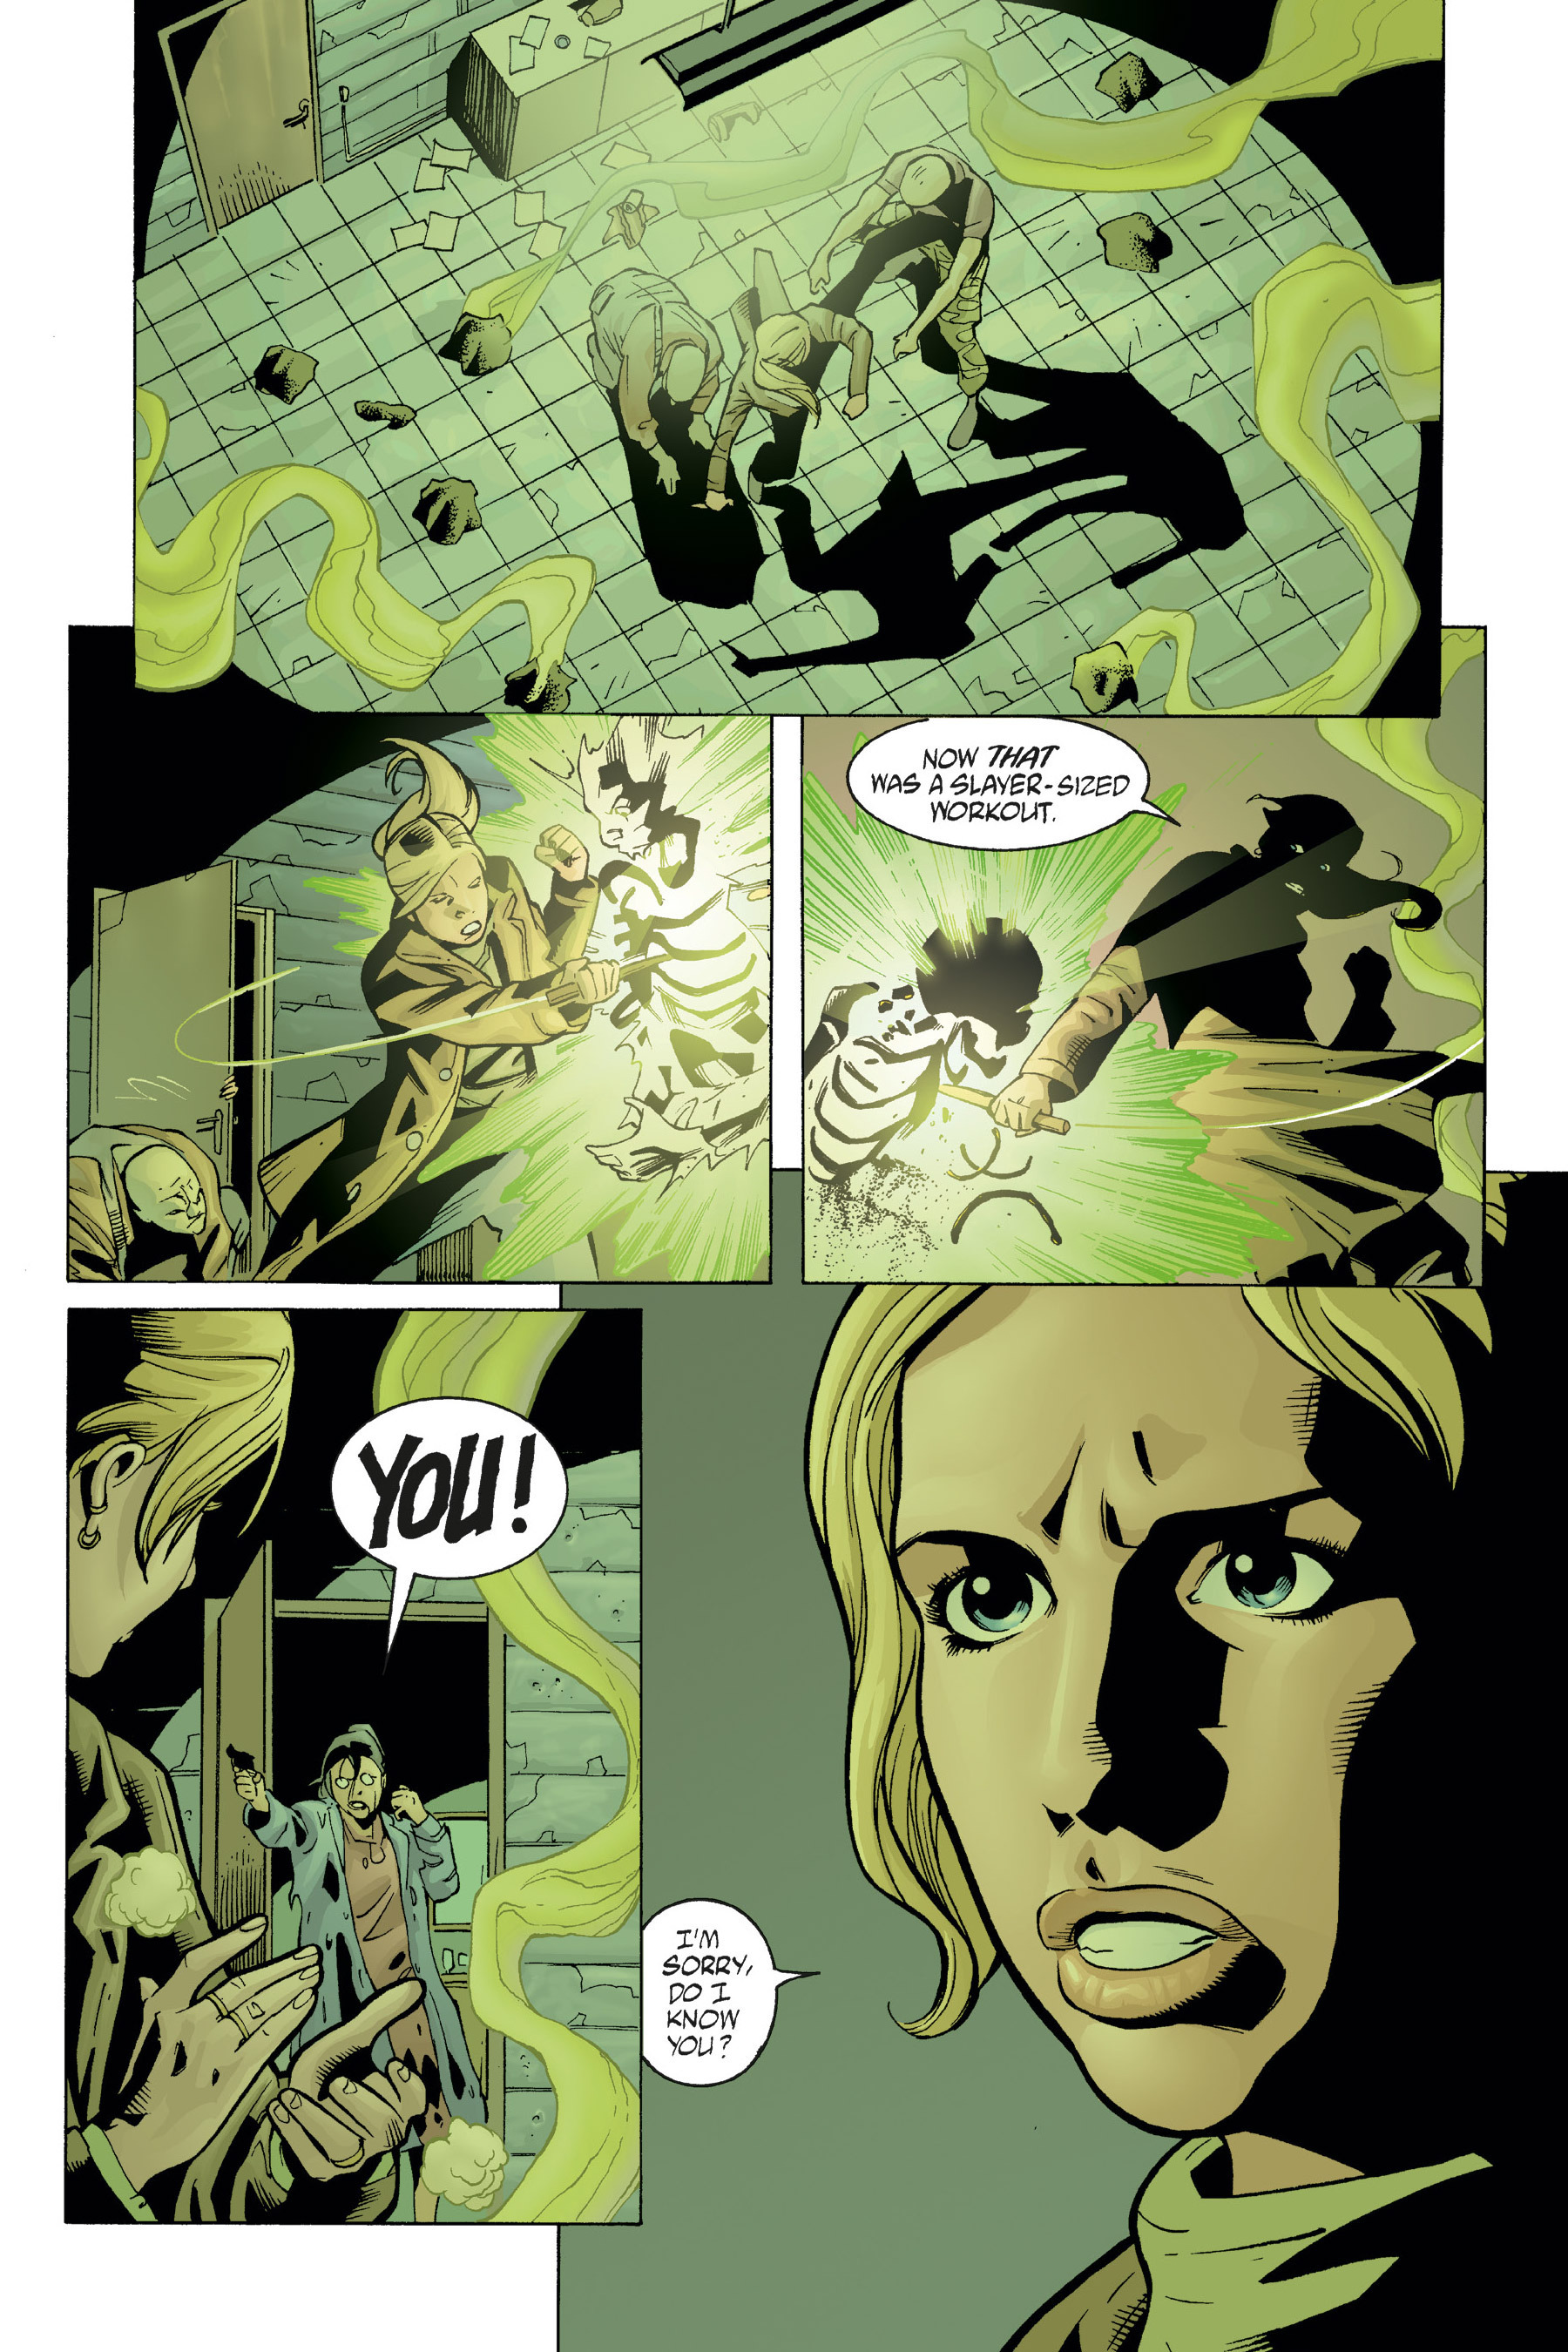 Read online Buffy the Vampire Slayer: Omnibus comic -  Issue # TPB 7 - 28